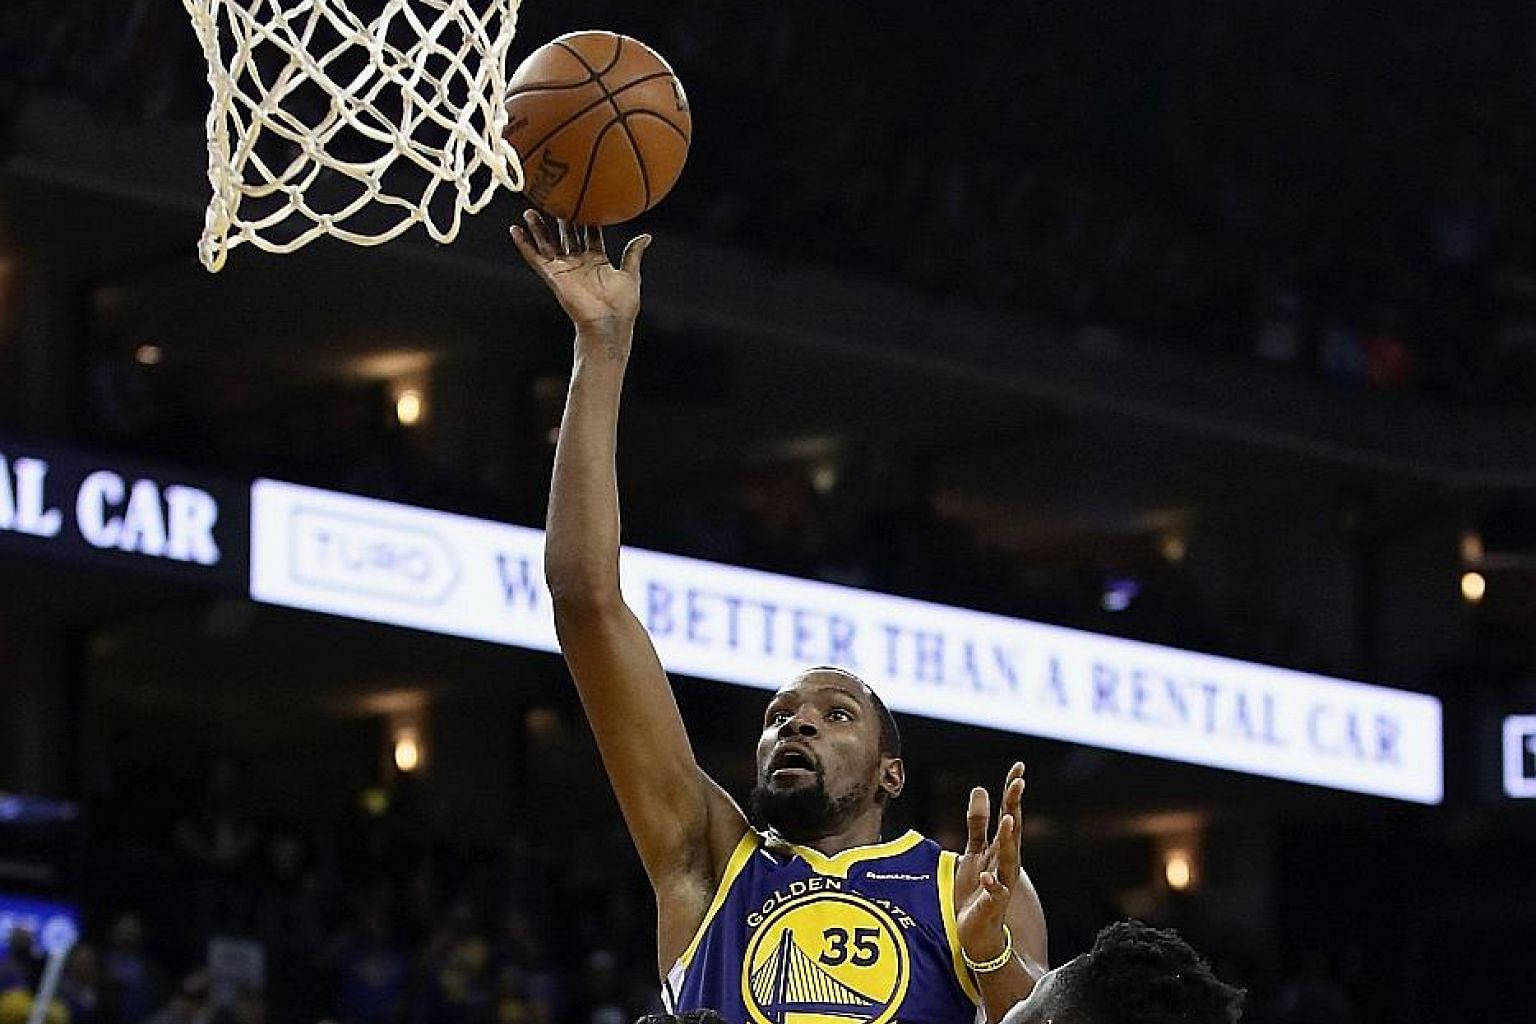 Golden State's Kevin Durant managing to take a shot despite the close attention of Orlando's Terrence Ross (No. 31) and Mo Bamba at Oracle Arena on Monday. The Warriors' 116-110 win was their third in four days after they had lost four in a row.